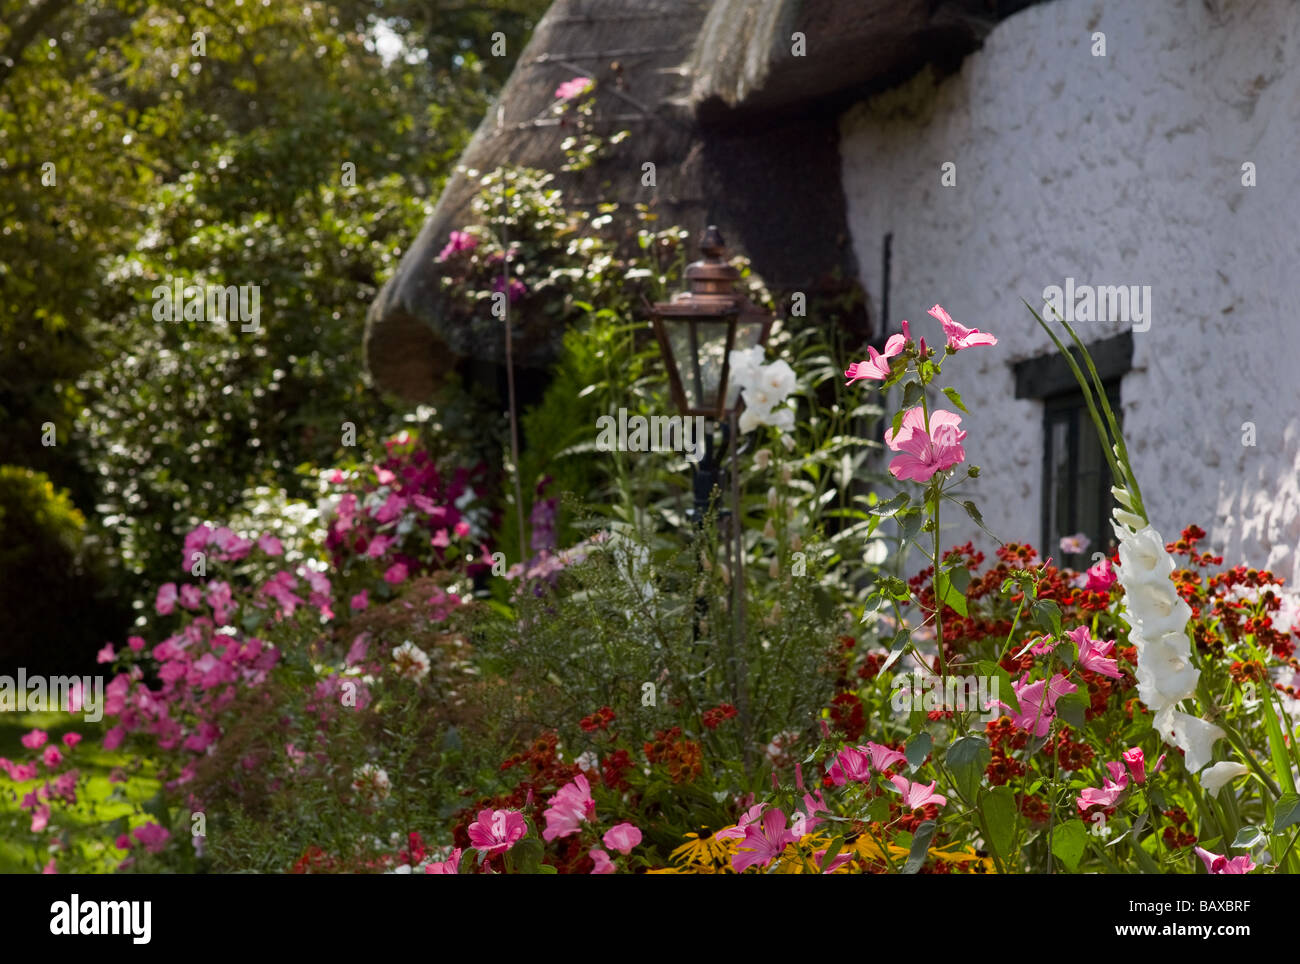 Late Summer Flowers In An English Cottage Garden